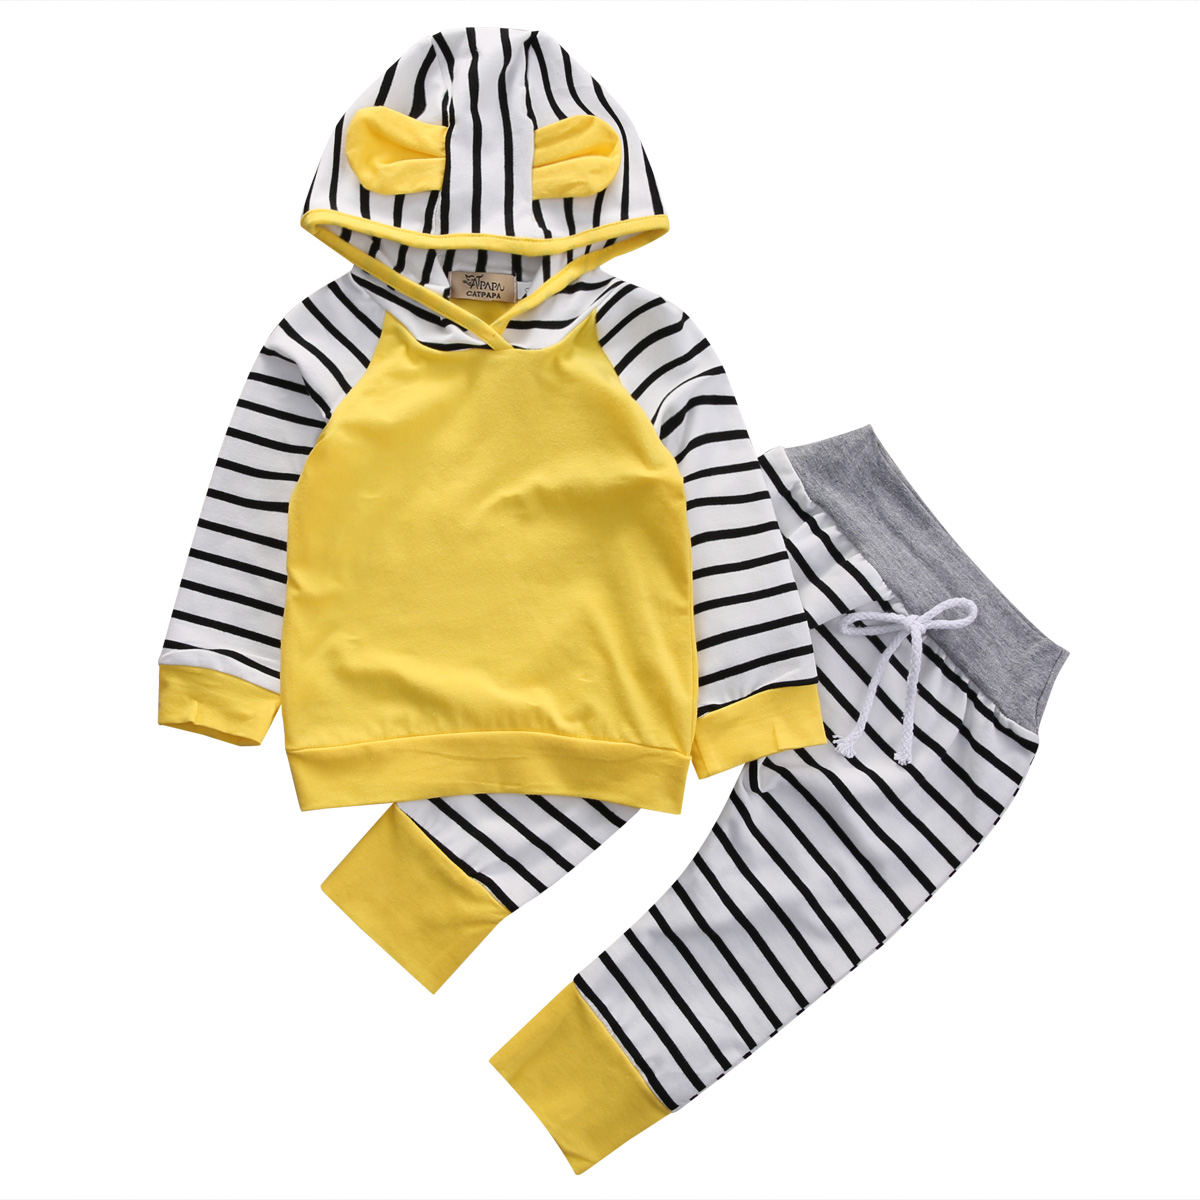 Cute 2PCS Toddler Kids Clothes Newborn Baby Boys Girl 3D Hooded Tops Sweatshirt and Striped Pants Outfit Clothing Set 0-3Y girls tops cute pants outfit clothes newborn kids baby girl clothing sets summer off shoulder striped short sleeve 1 6t